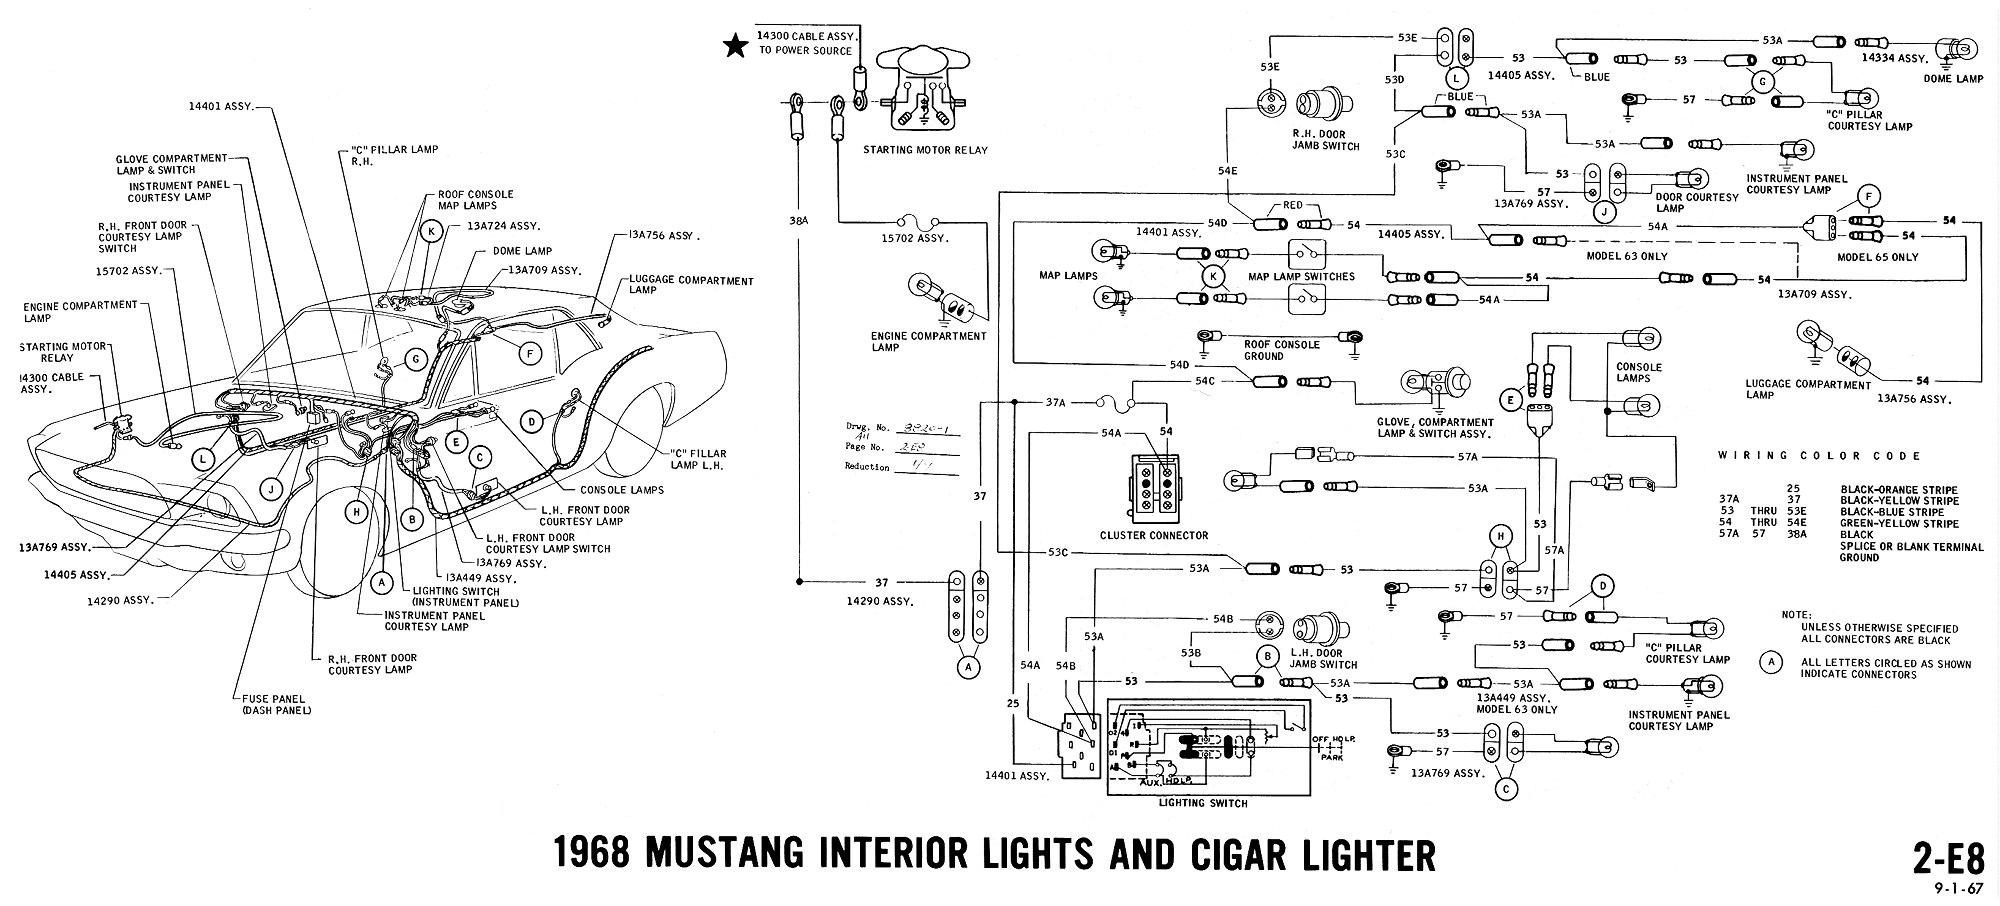 1968 Mustang Wiring Diagrams on windshield wiper motor wiring harness